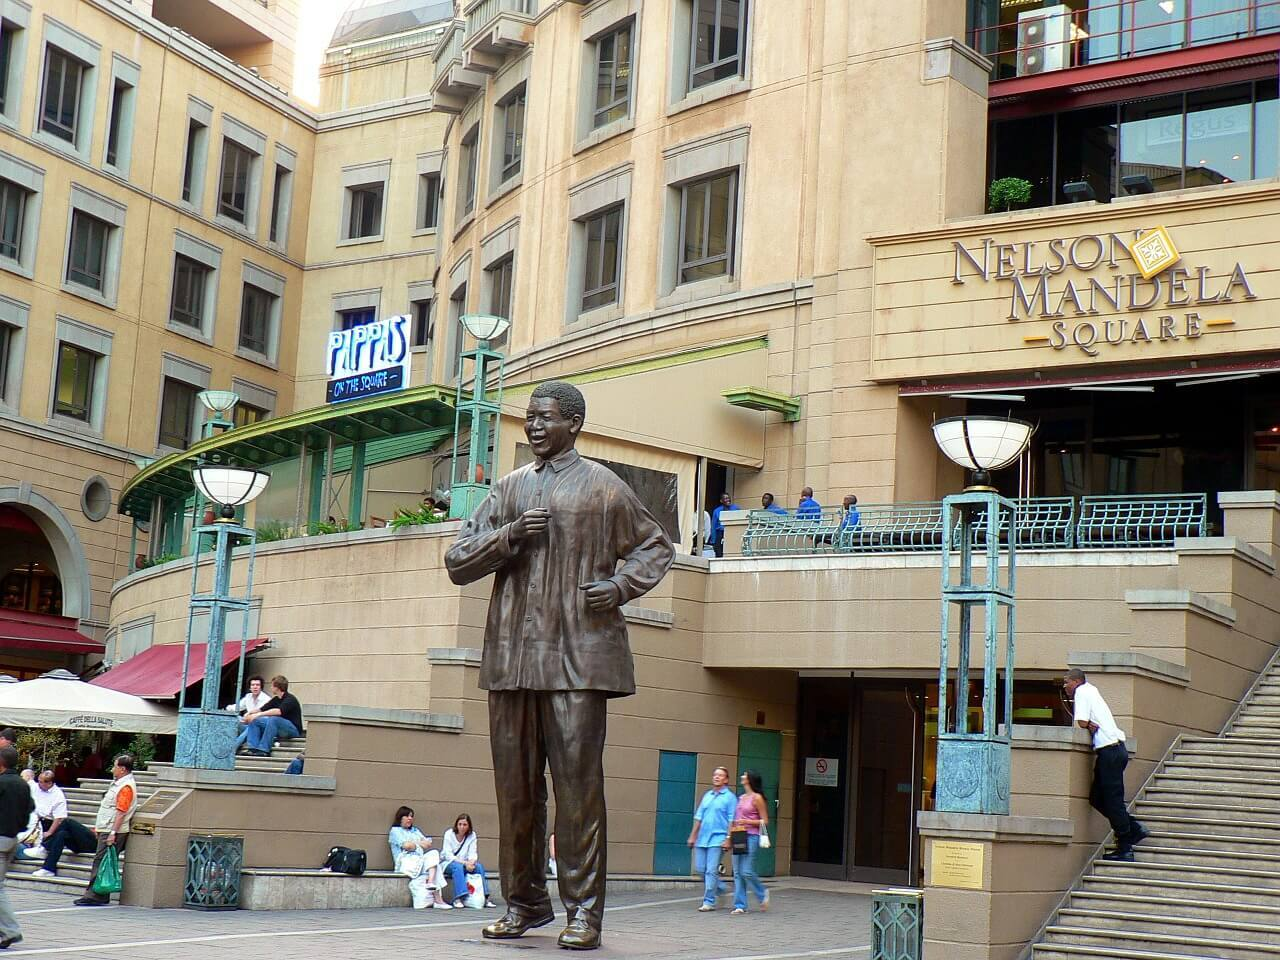 Nelson Mandela Square - Things to do in Johannesburg